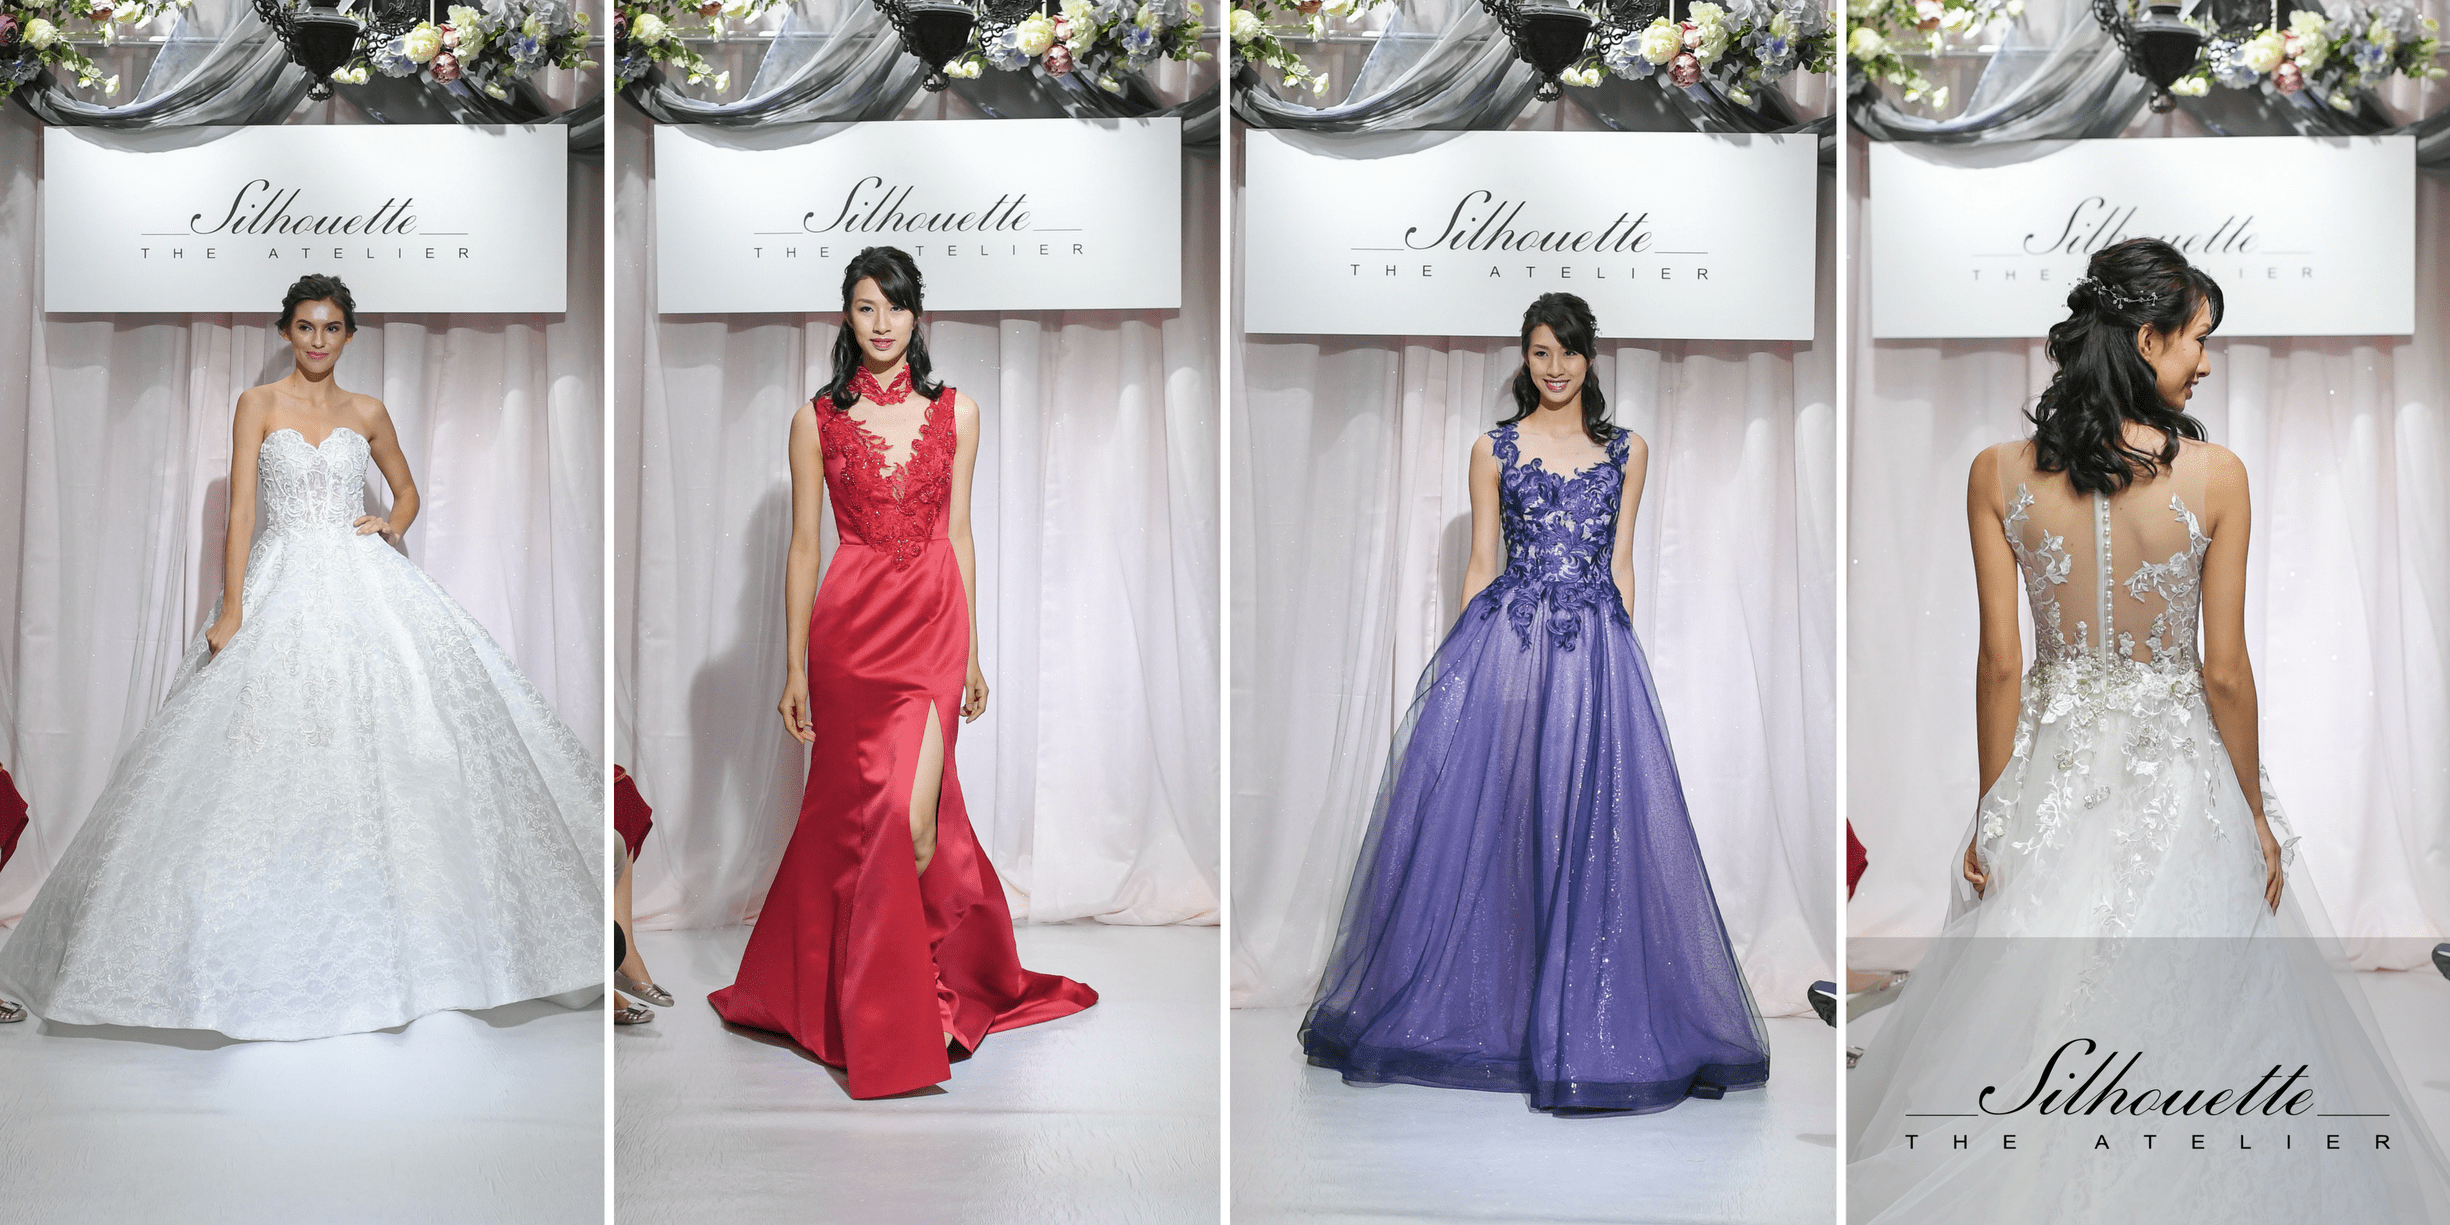 Silhouette The Atelier Gowns